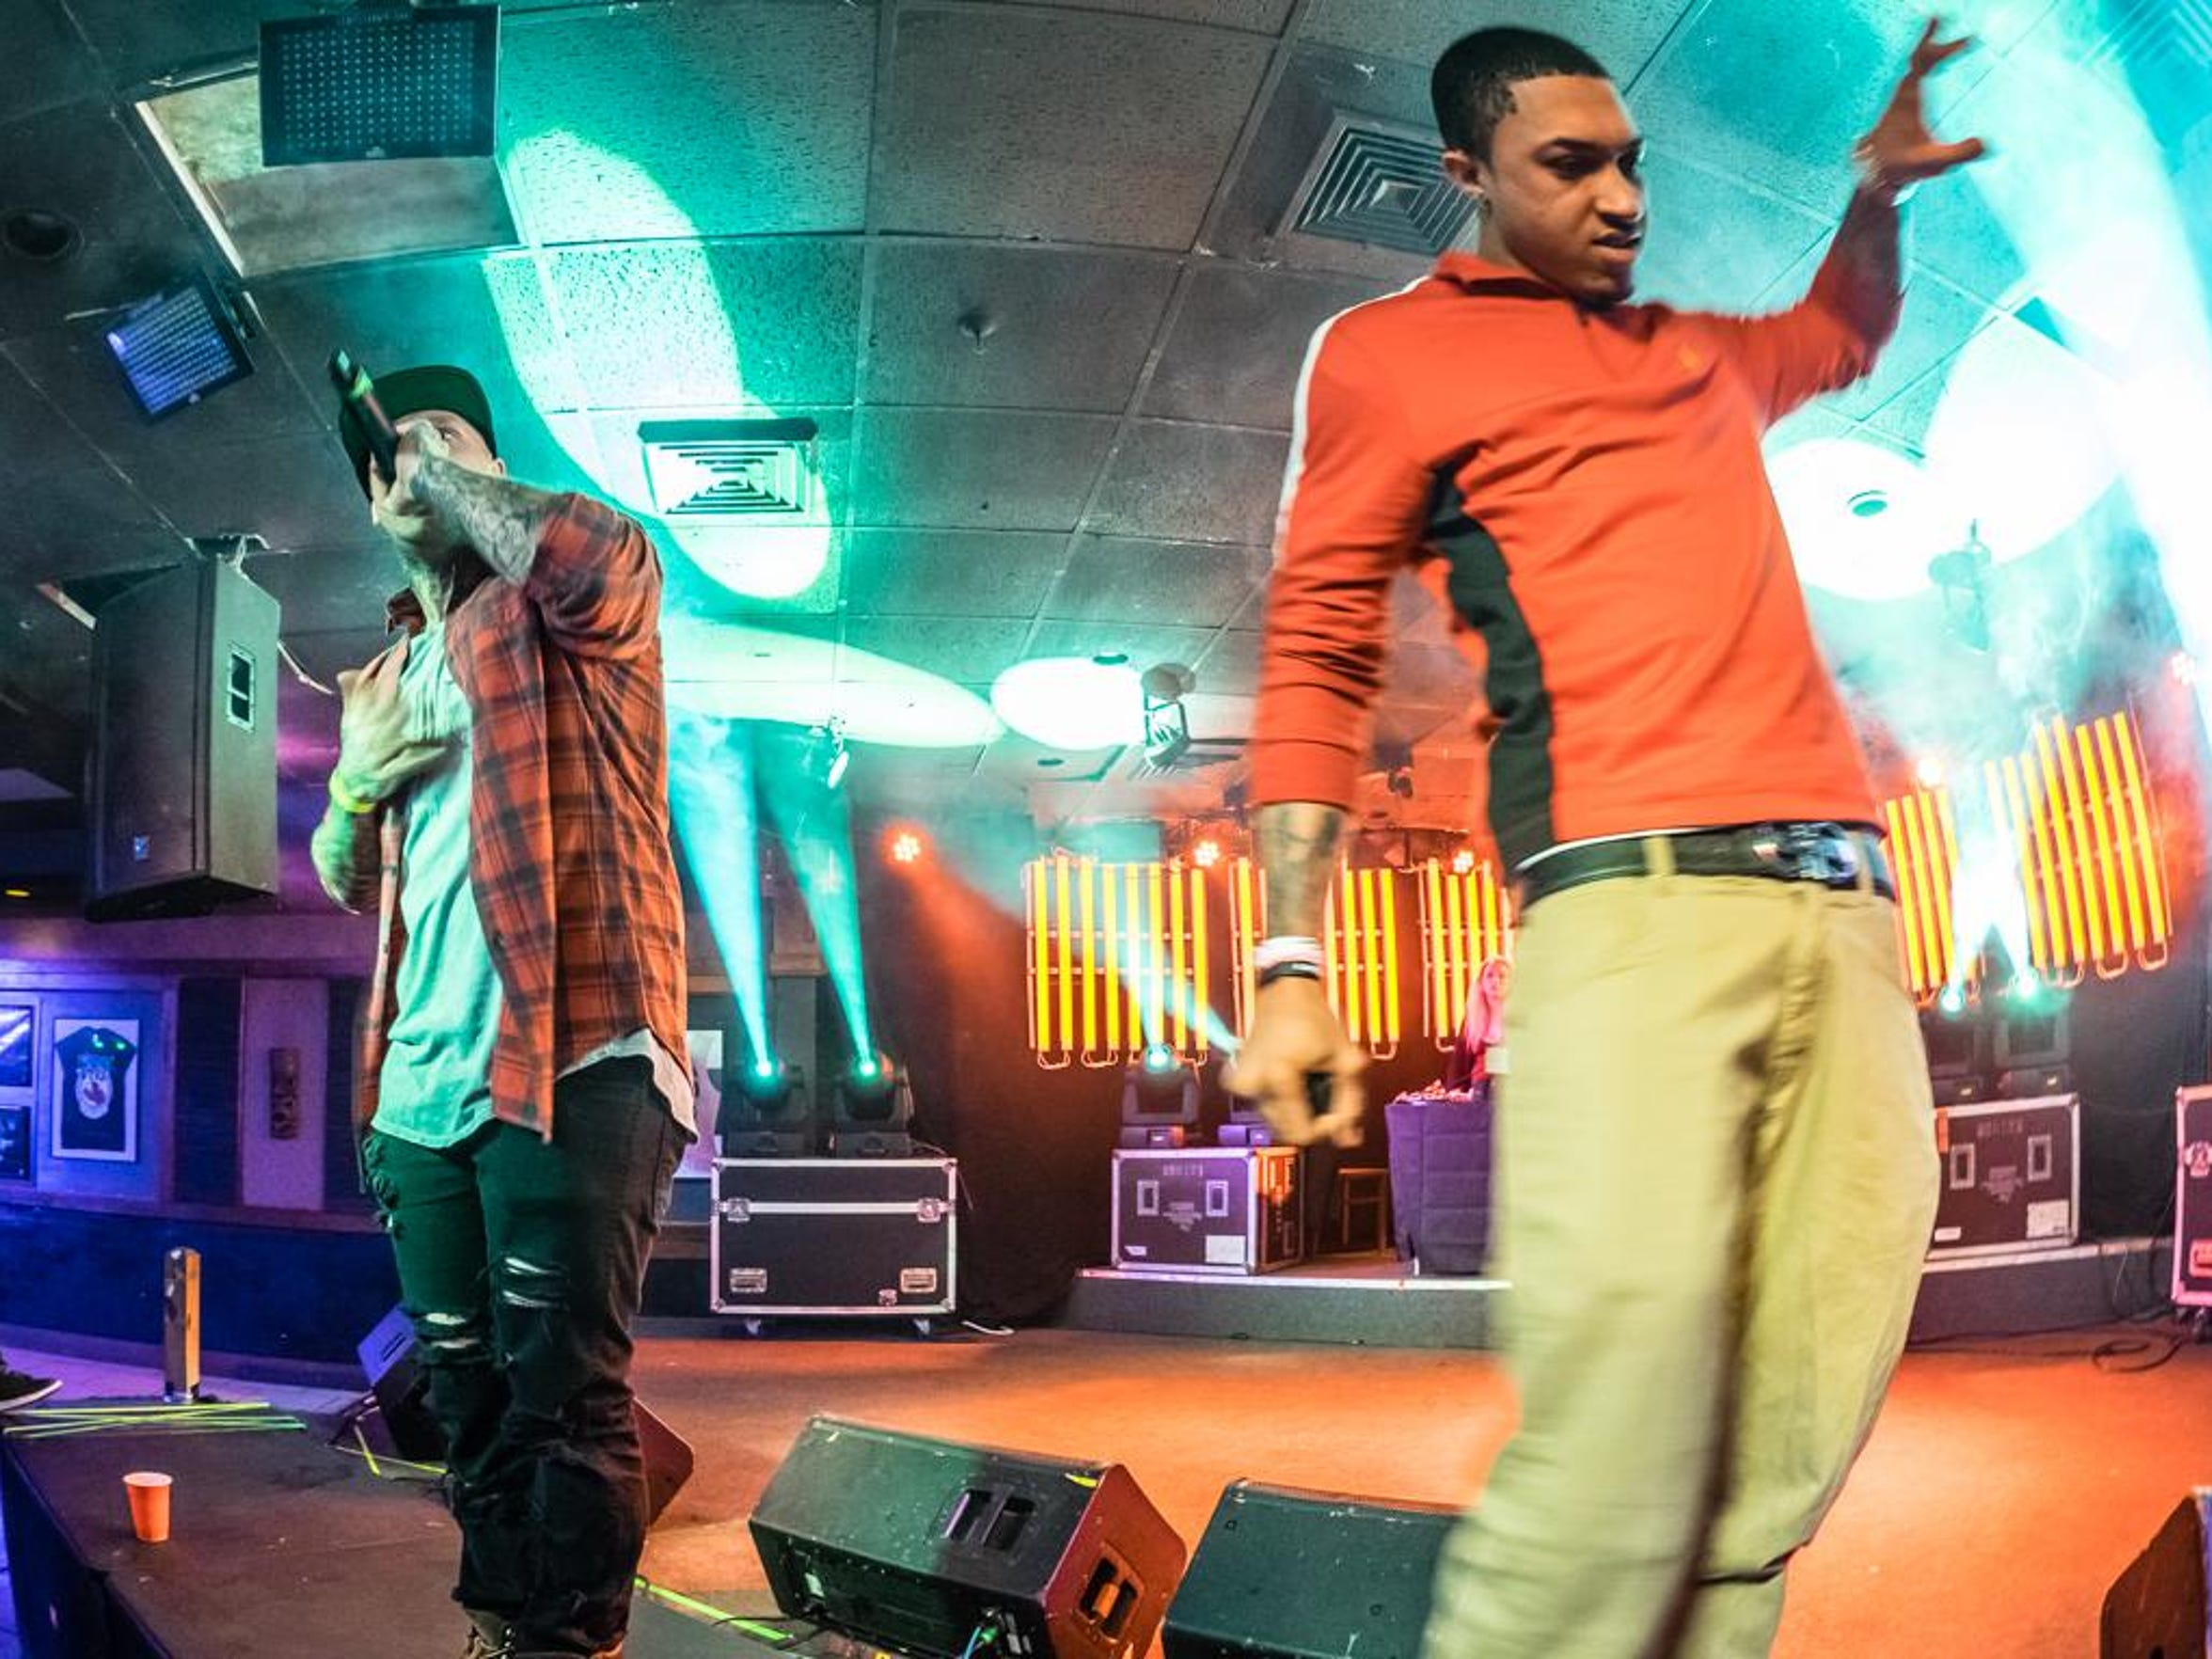 Hip-hop artists Bobby Capri and Roc Rizzy perform at Shaka's Live at Virginia Beach for the Trae Tha Truth tour on Jan. 18, 2016.